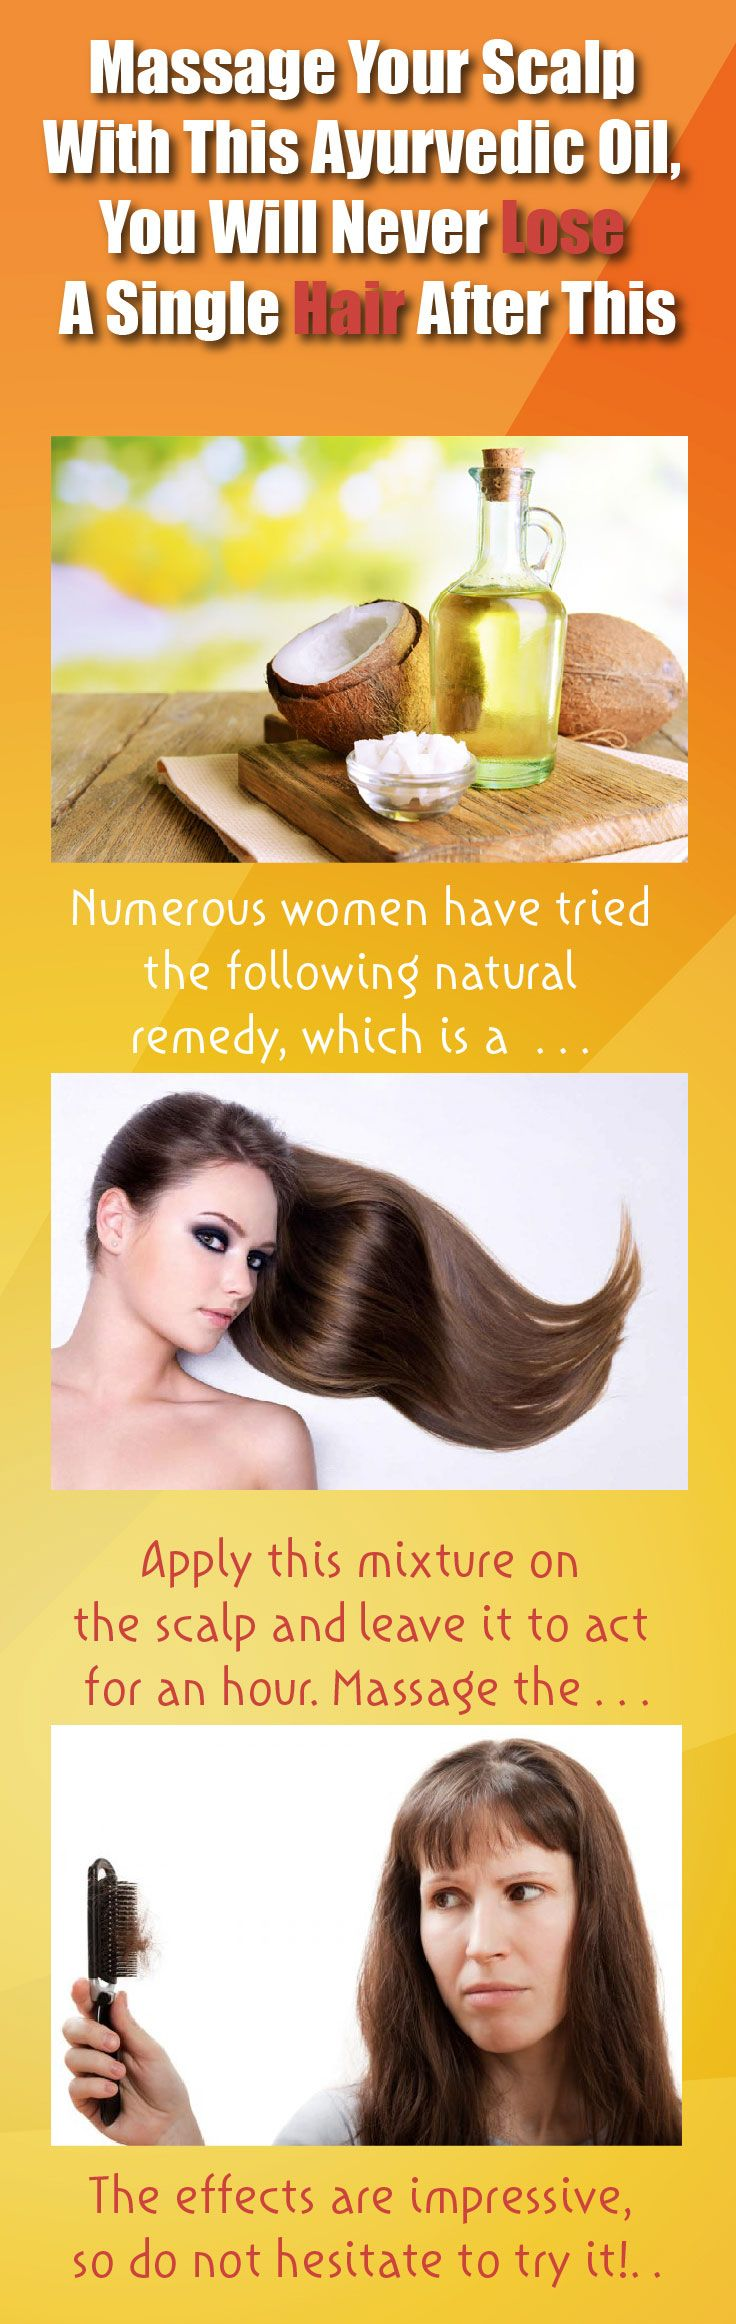 Numerous women have tried the following natural remedy, which is a traditional Ayurvedic remedy which has been commonly used to treat hair loss. It contains three ingredients which nourish the scalp and stimulate the hair growth. This is how to prepare it: Ingredients: -Coconut oil -Castor oil Apply this mixture on the scalp and leave…